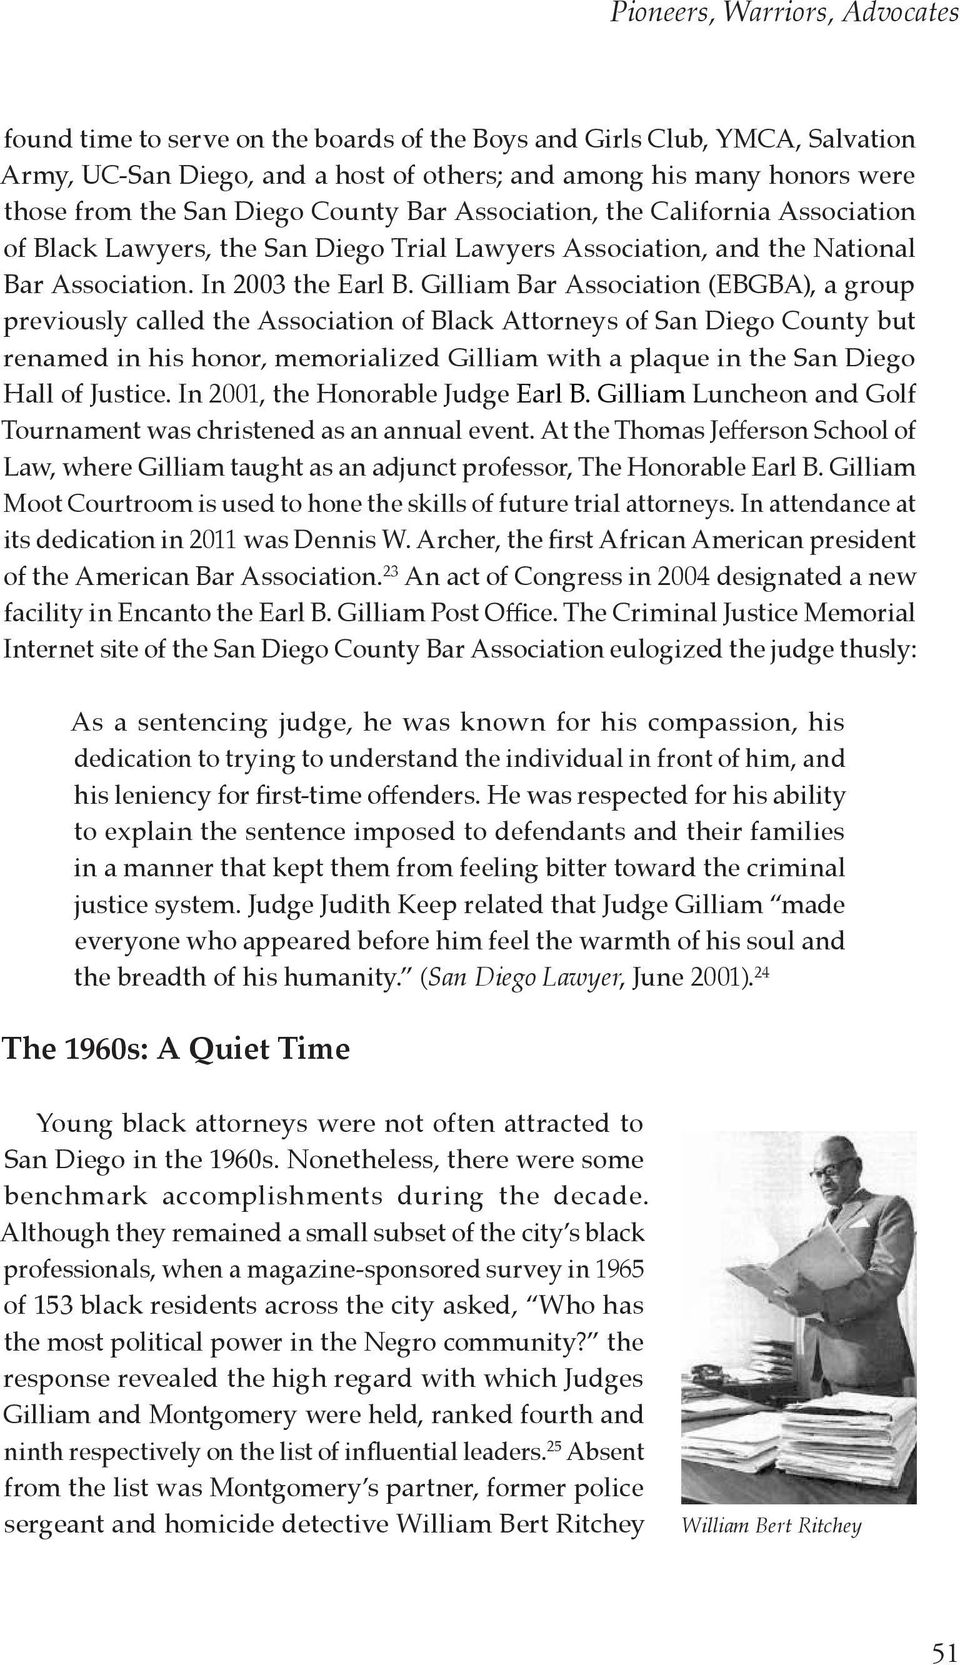 Gilliam Bar Association (EBGBA), a group previously called the Association of Black Attorneys of San Diego County but renamed in his honor, memorialized Gilliam with a plaque in the San Diego Hall of